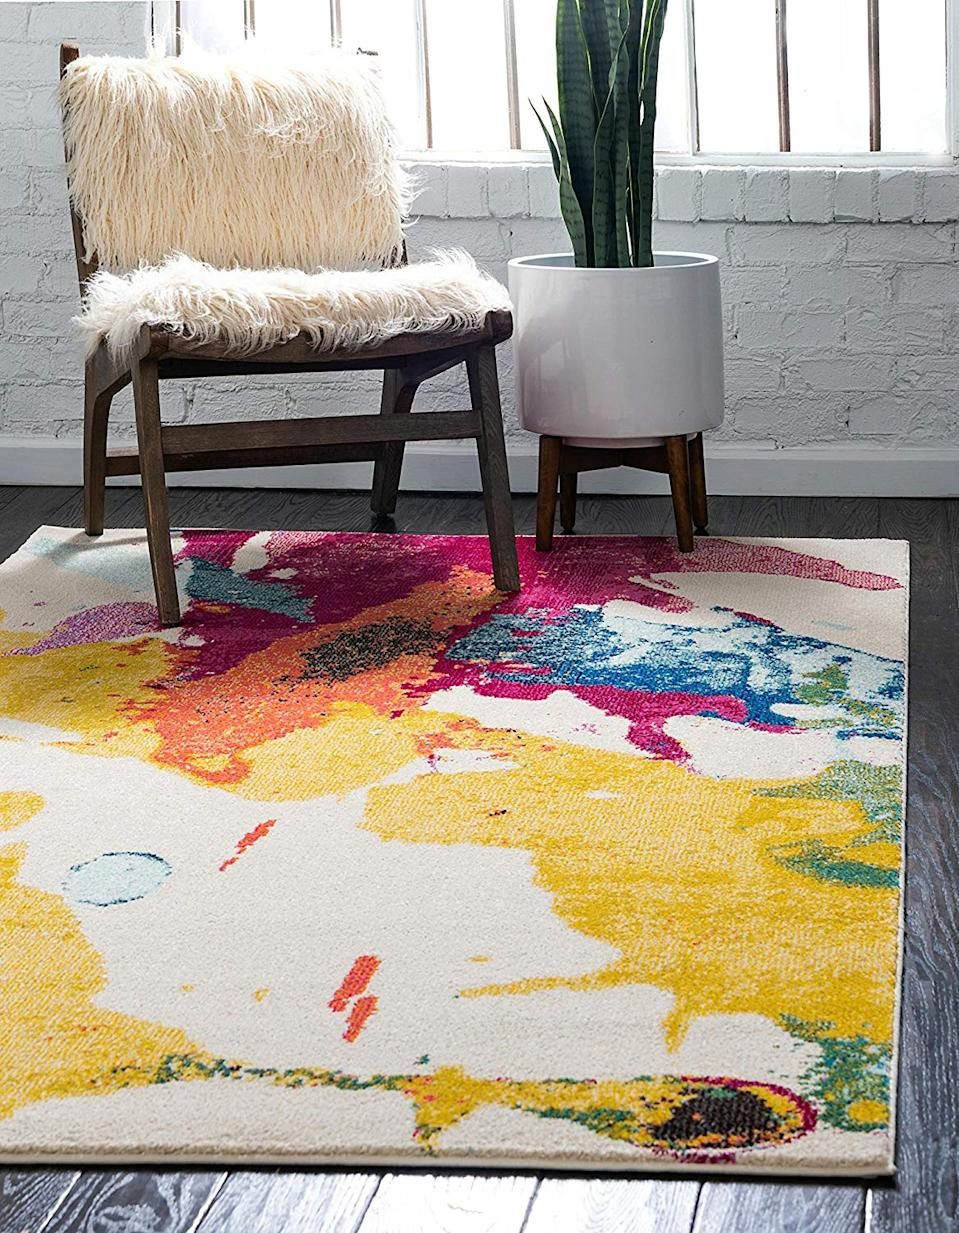 """<a href=""""https://www.amazon.com/Unique-Loom-Estrella-Collection-Colorful/dp/B00RDYPBUK/ref=sr_1_3"""" rel=""""nofollow noopener"""" target=""""_blank"""" data-ylk=""""slk:Unique Loom Abstract Statement Rug"""" class=""""link rapid-noclick-resp""""><h3>Unique Loom Abstract Statement Rug<br></h3></a><br>If you can't decide on one color, go for them all with this abstract area rug that has warm shades of cream, gold, orange, navy blue, and purple. It's bound to make a statement no matter where in your home you decide to put it.<br><br><strong>Unique Loom</strong> Colorful Abstract Area Rug, $, available at <a href=""""https://www.amazon.com/dp/B016WTE1QG"""" rel=""""nofollow noopener"""" target=""""_blank"""" data-ylk=""""slk:Amazon"""" class=""""link rapid-noclick-resp"""">Amazon</a>"""